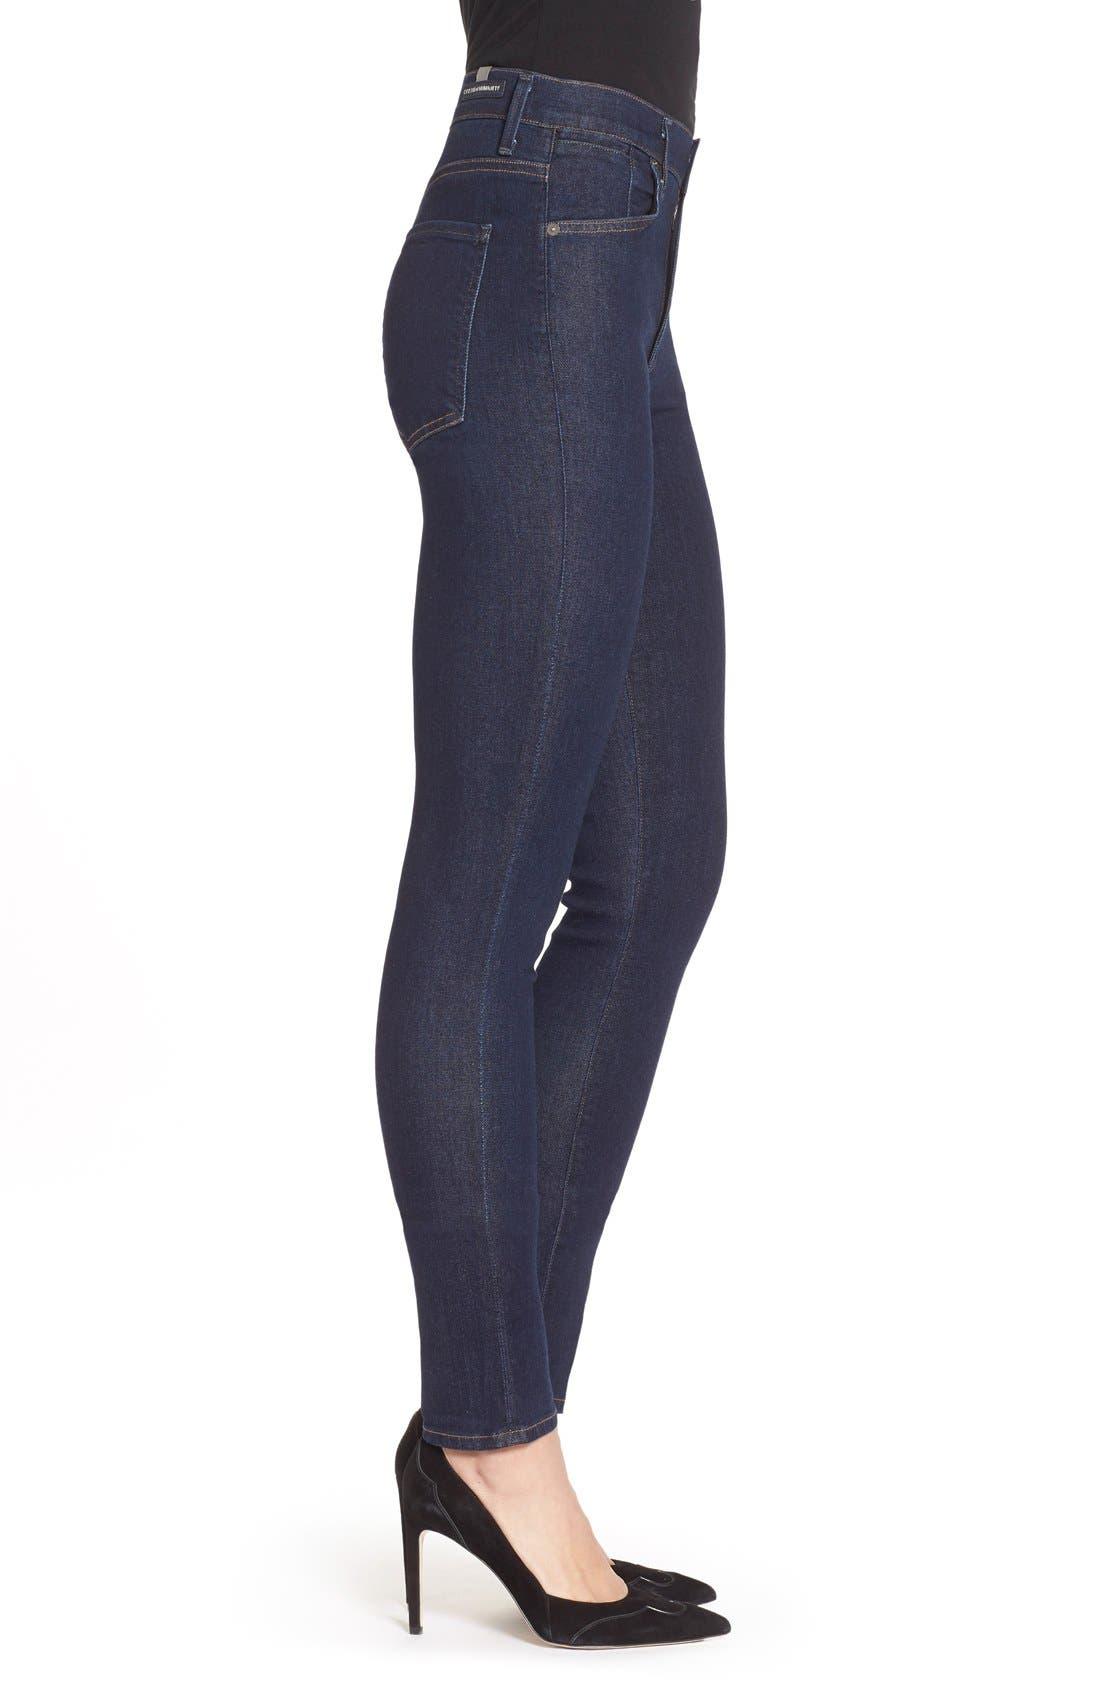 'Carlie' High Rise Skinny Jeans,                             Alternate thumbnail 2, color,                             406